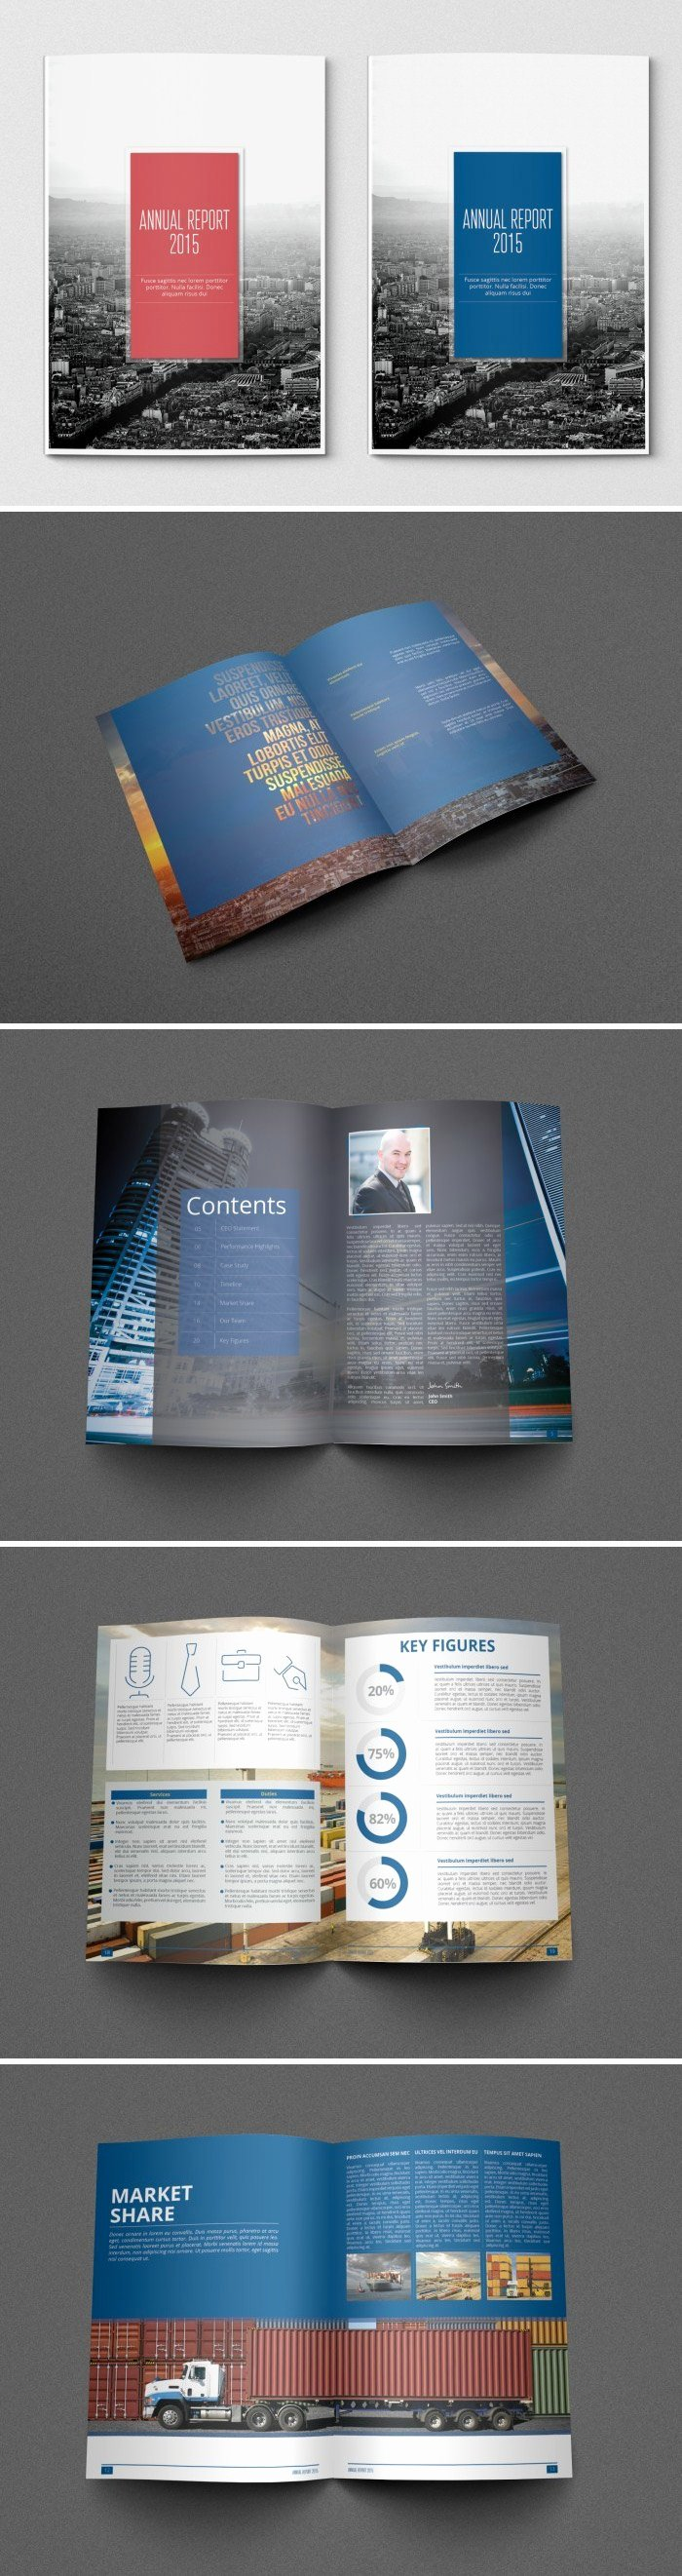 Annual Financial Report Template New A Showcase Of Annual Report Brochure Designs to Check Out